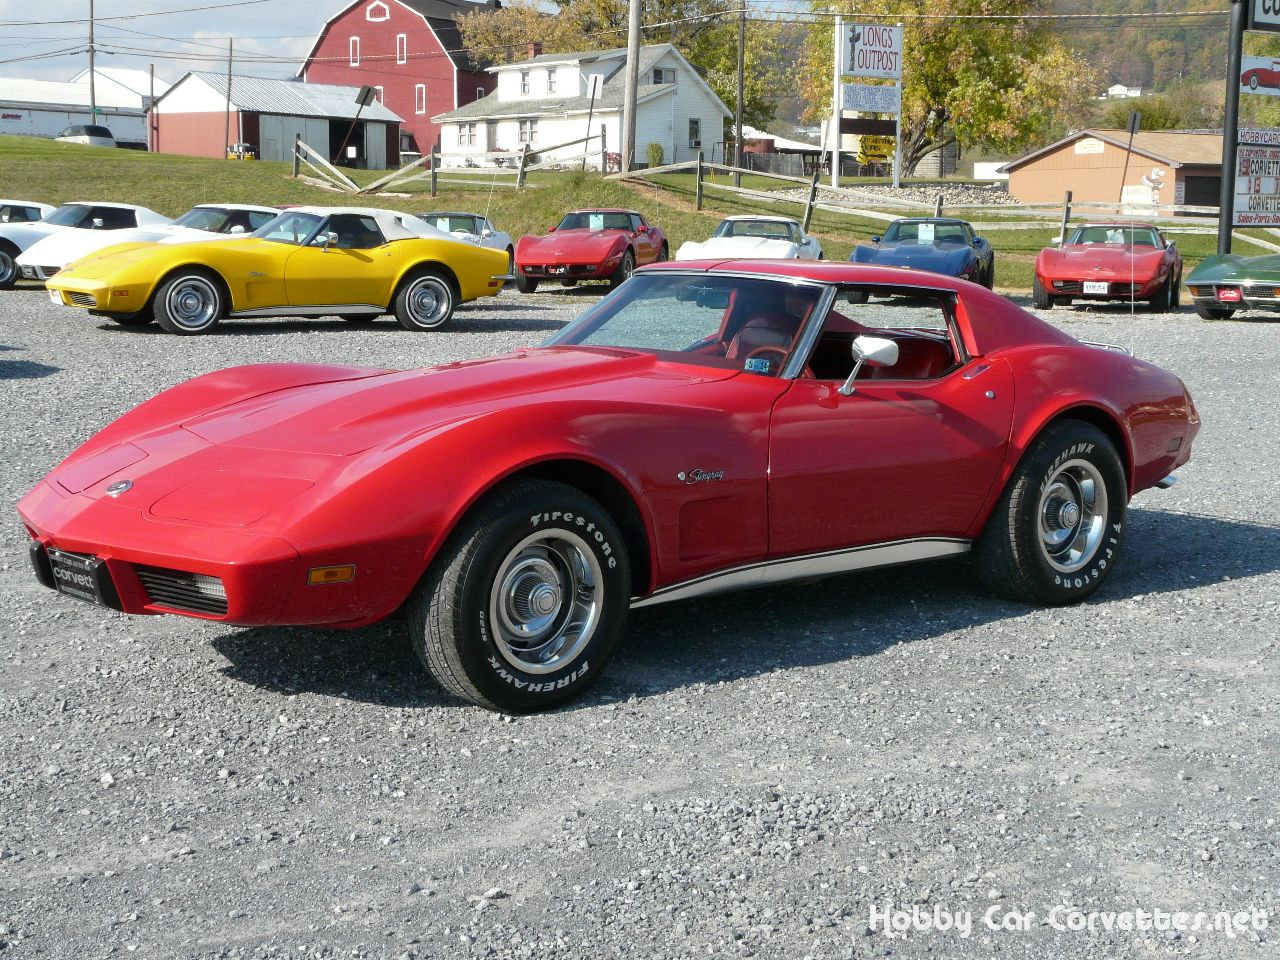 1976 red red corvette 4spd ver numbers matching l48 350 4spd red